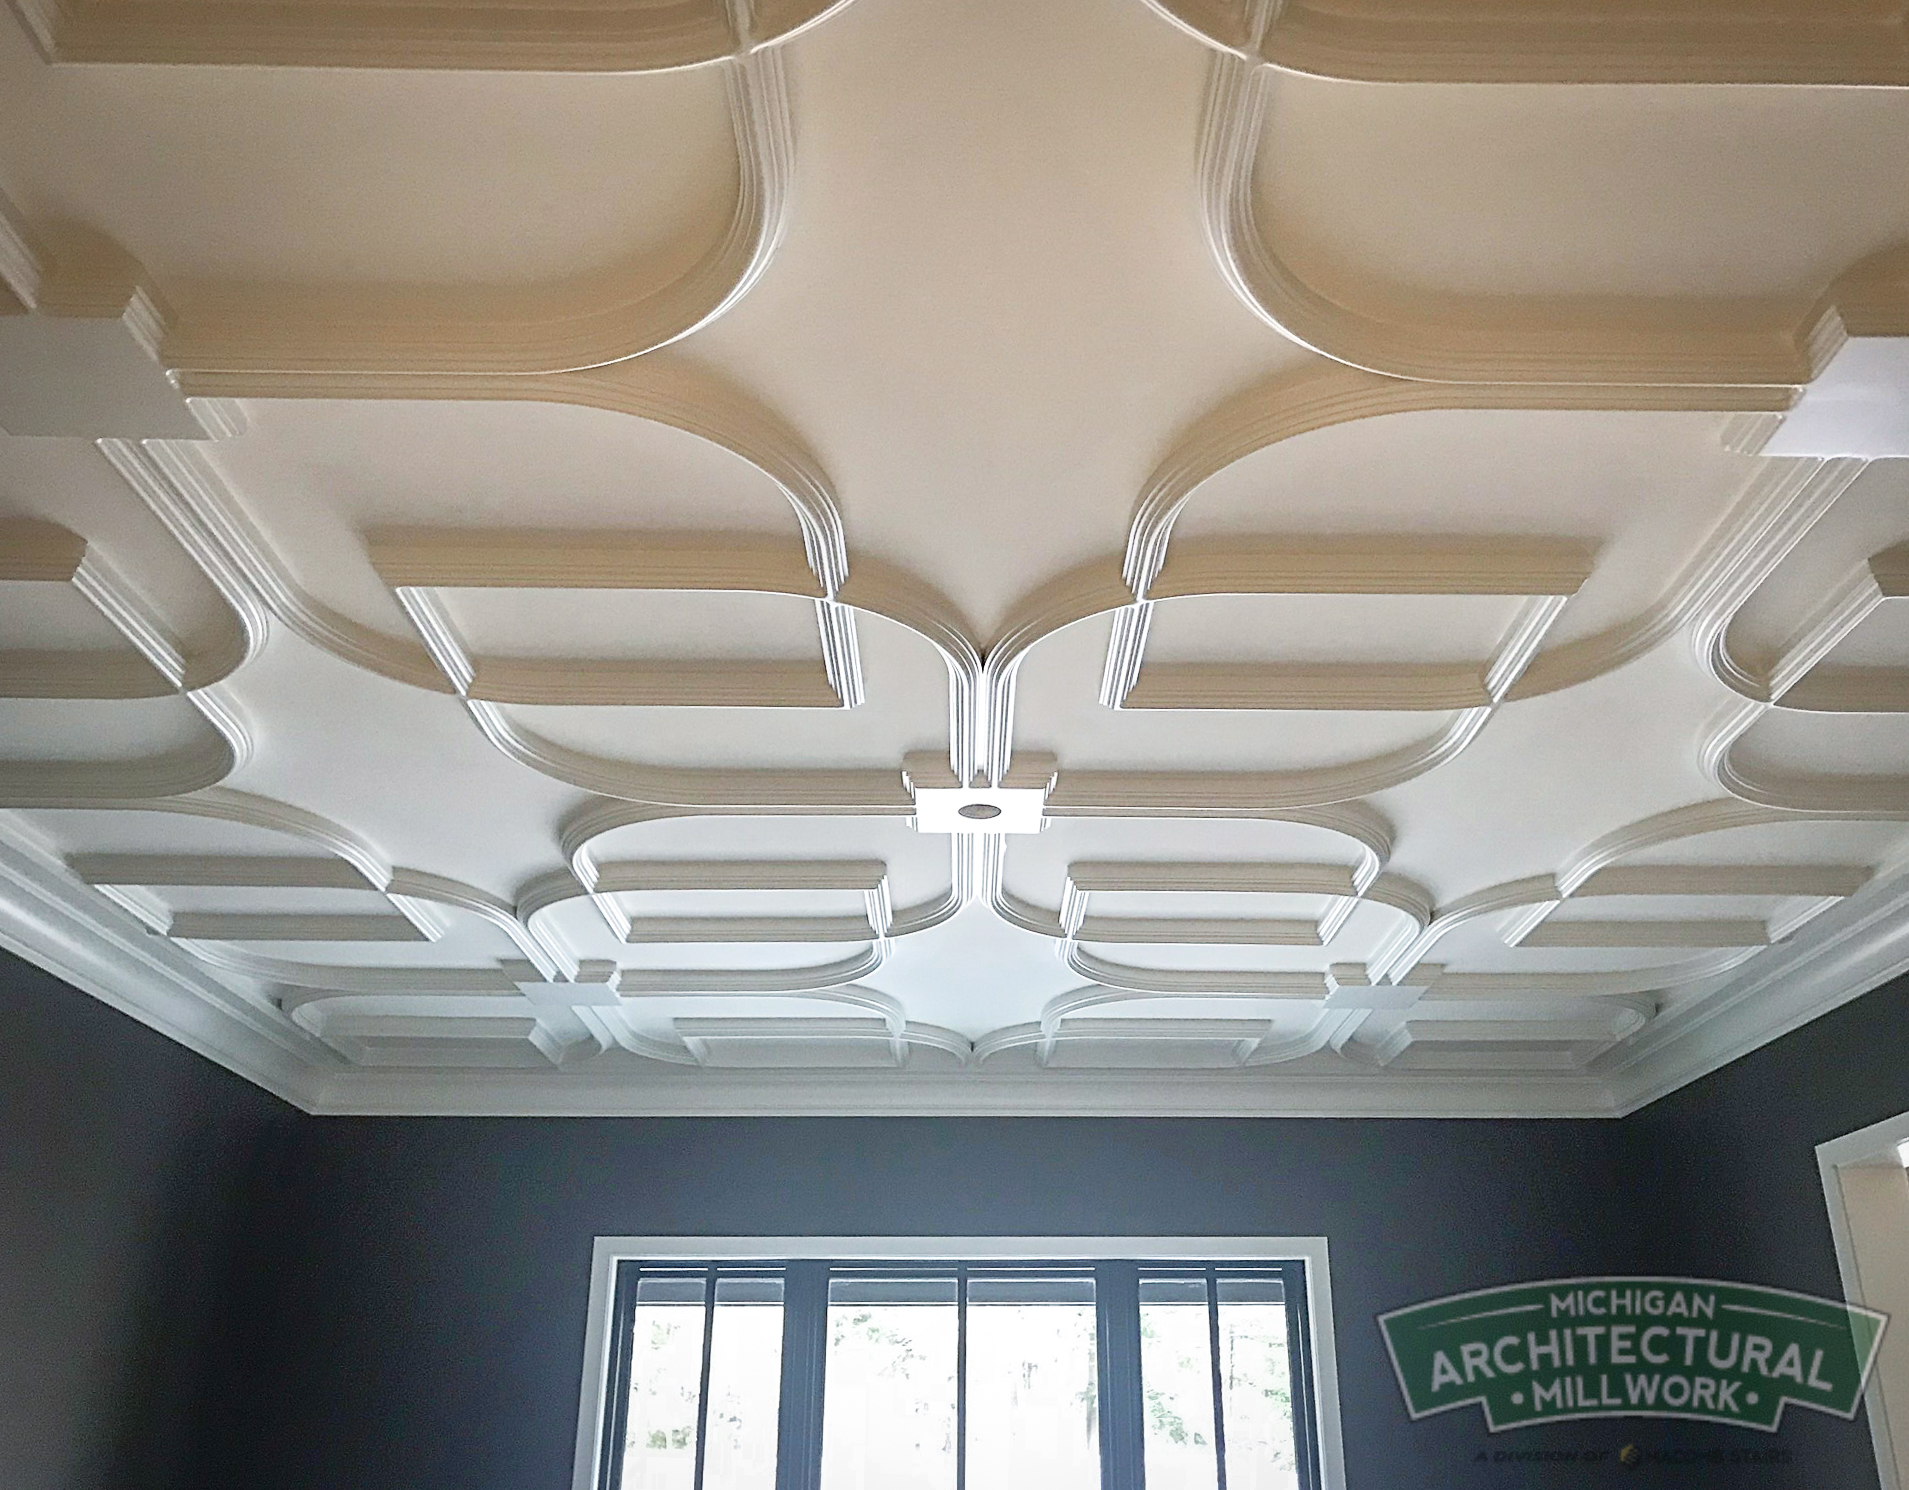 Michigan Architectural Millwork- Moulding and Millwork Photo-202.jpg